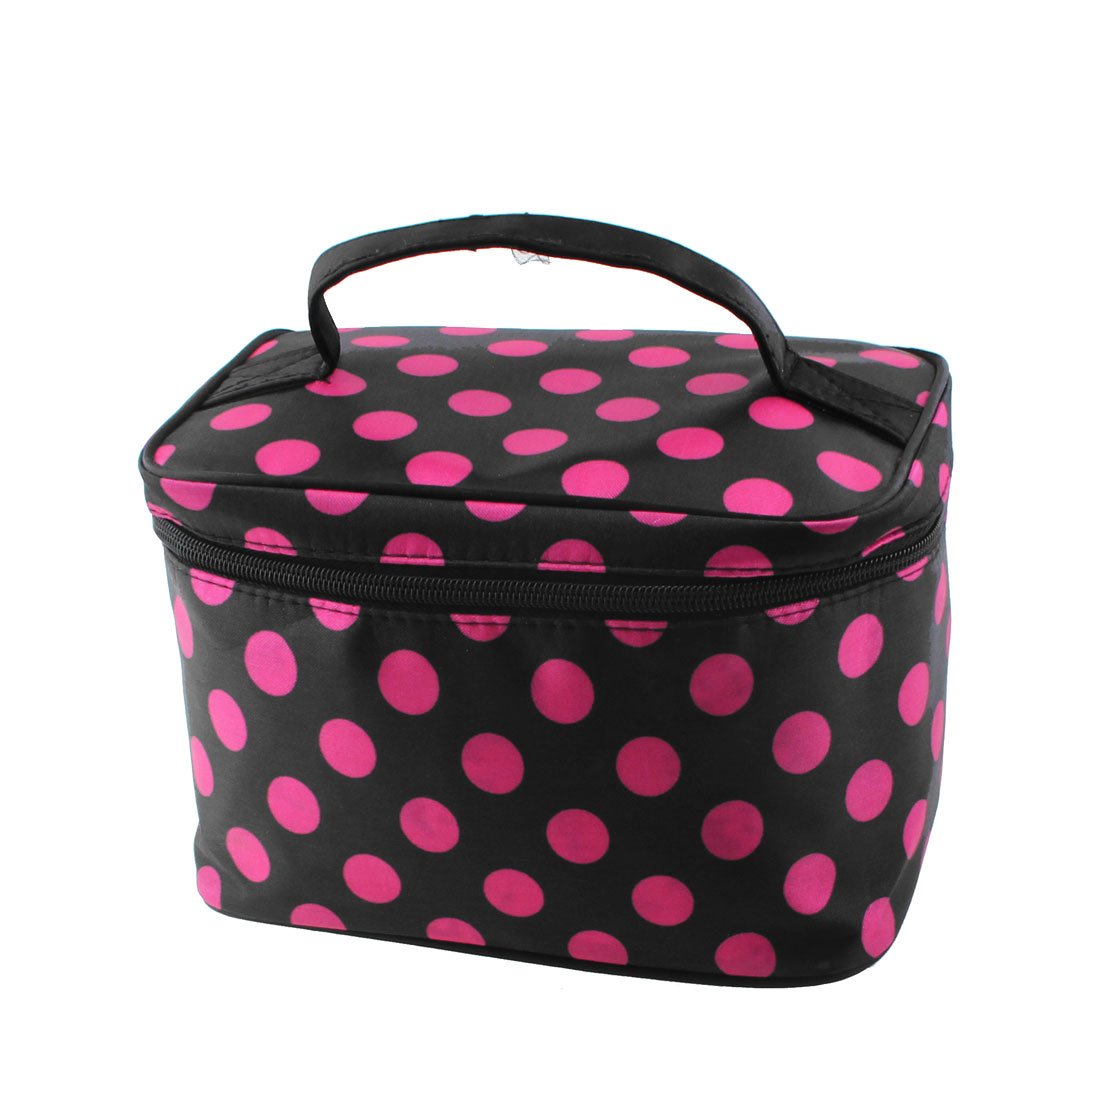 Dotted Pattern Zip Up Cosmetic Makeup Storage Case Organizer Bag Fuchsia Black